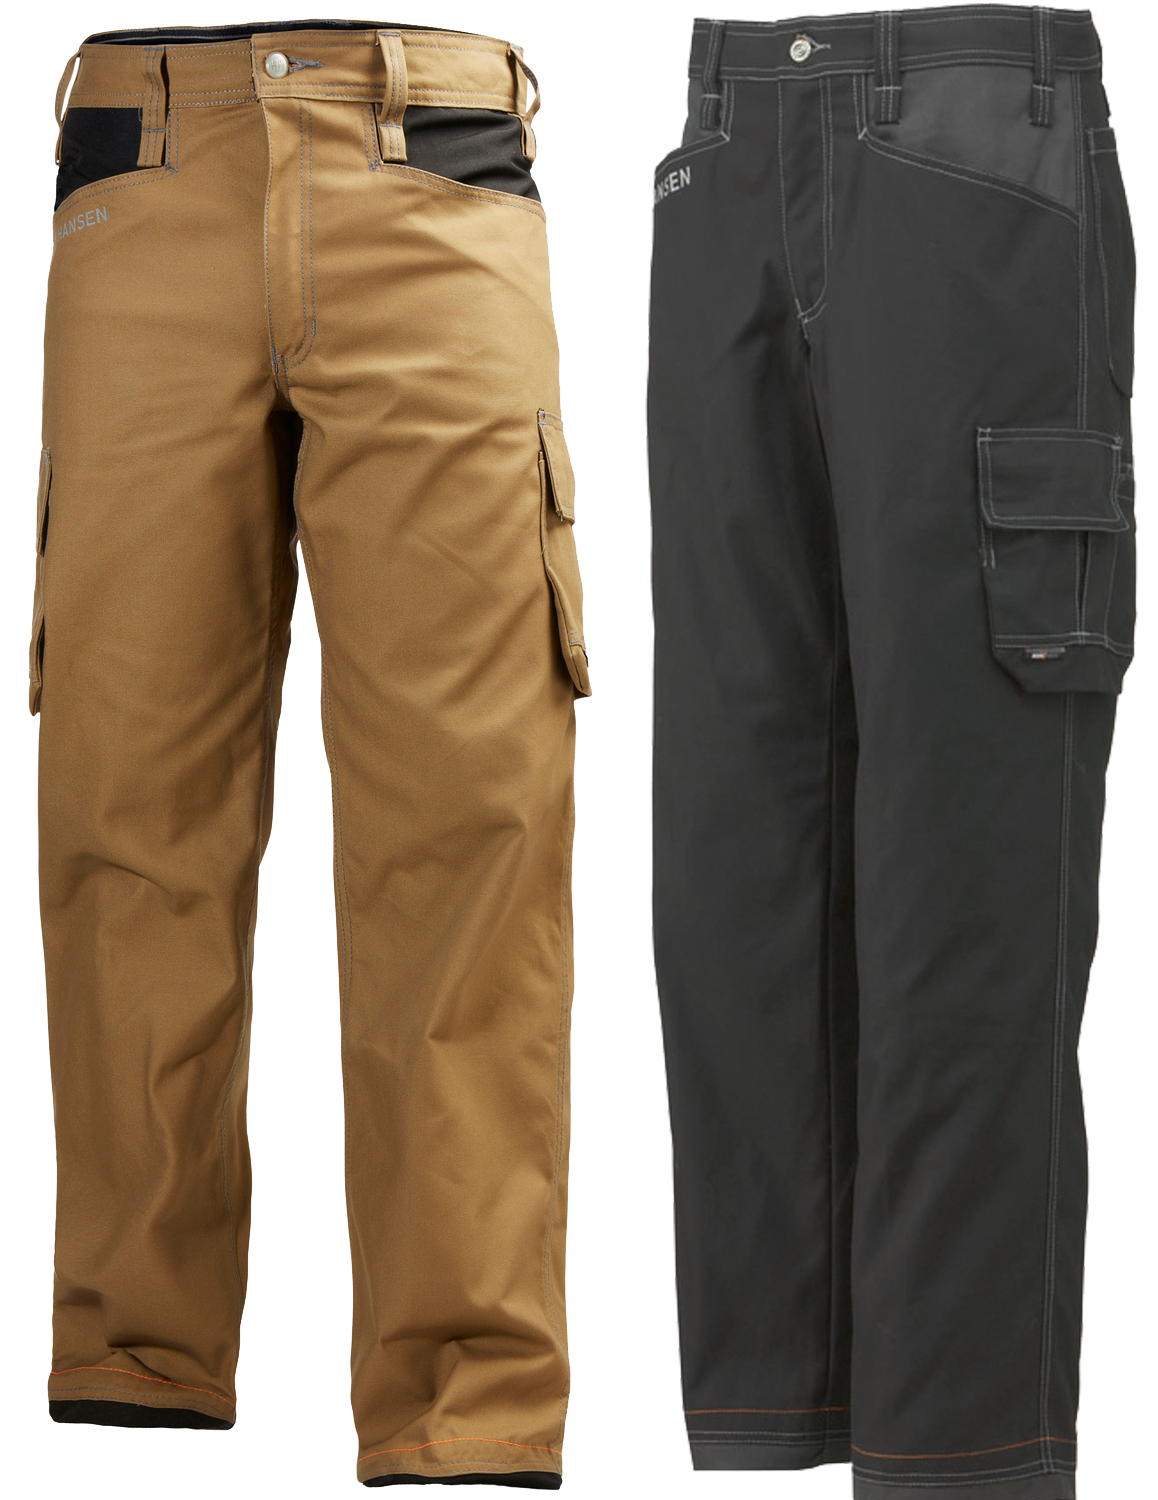 3f4674277f Helly Hansen 76485 Chelsea Construction Pants — iWantWorkwear